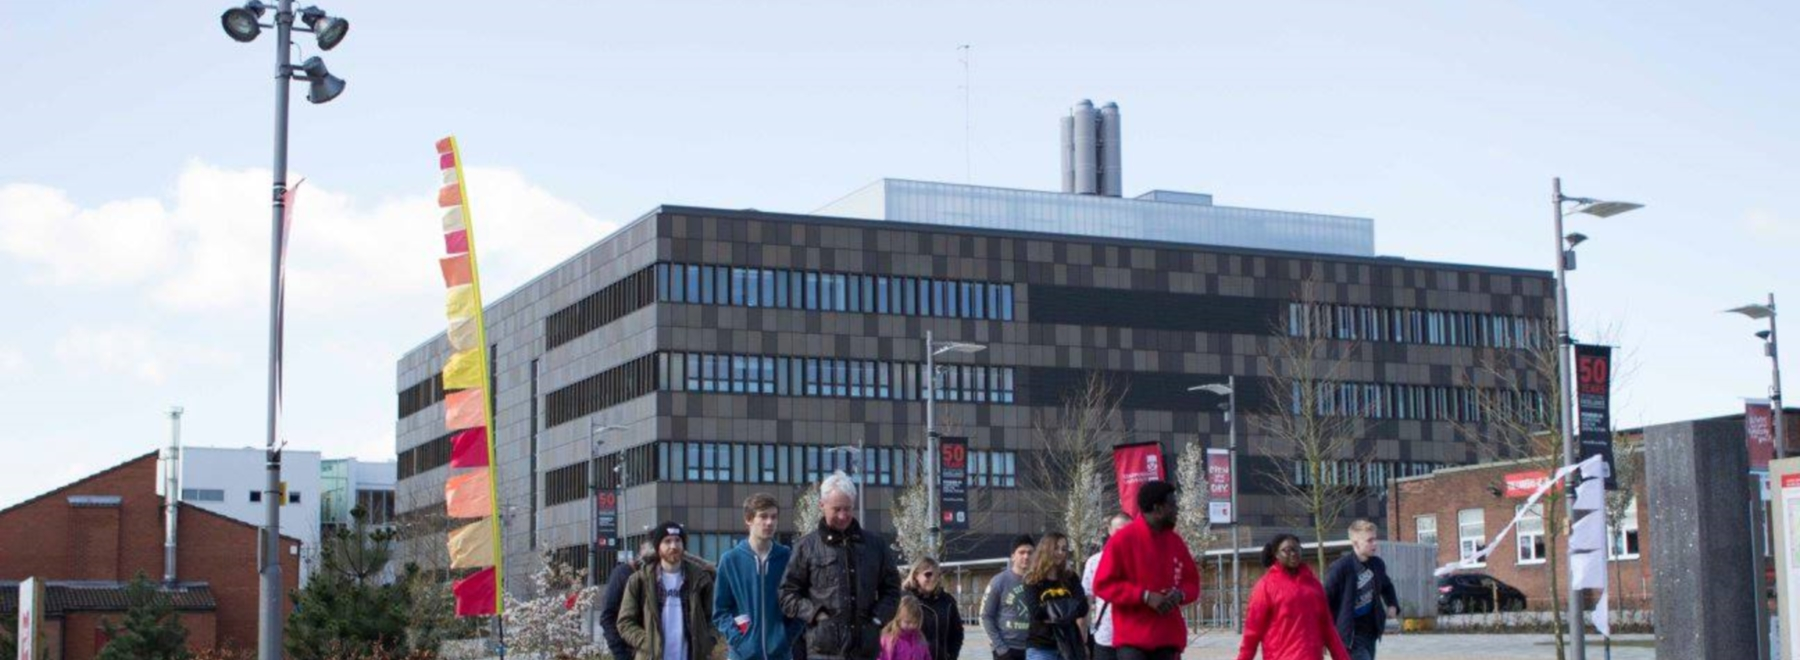 Staffordshire University header